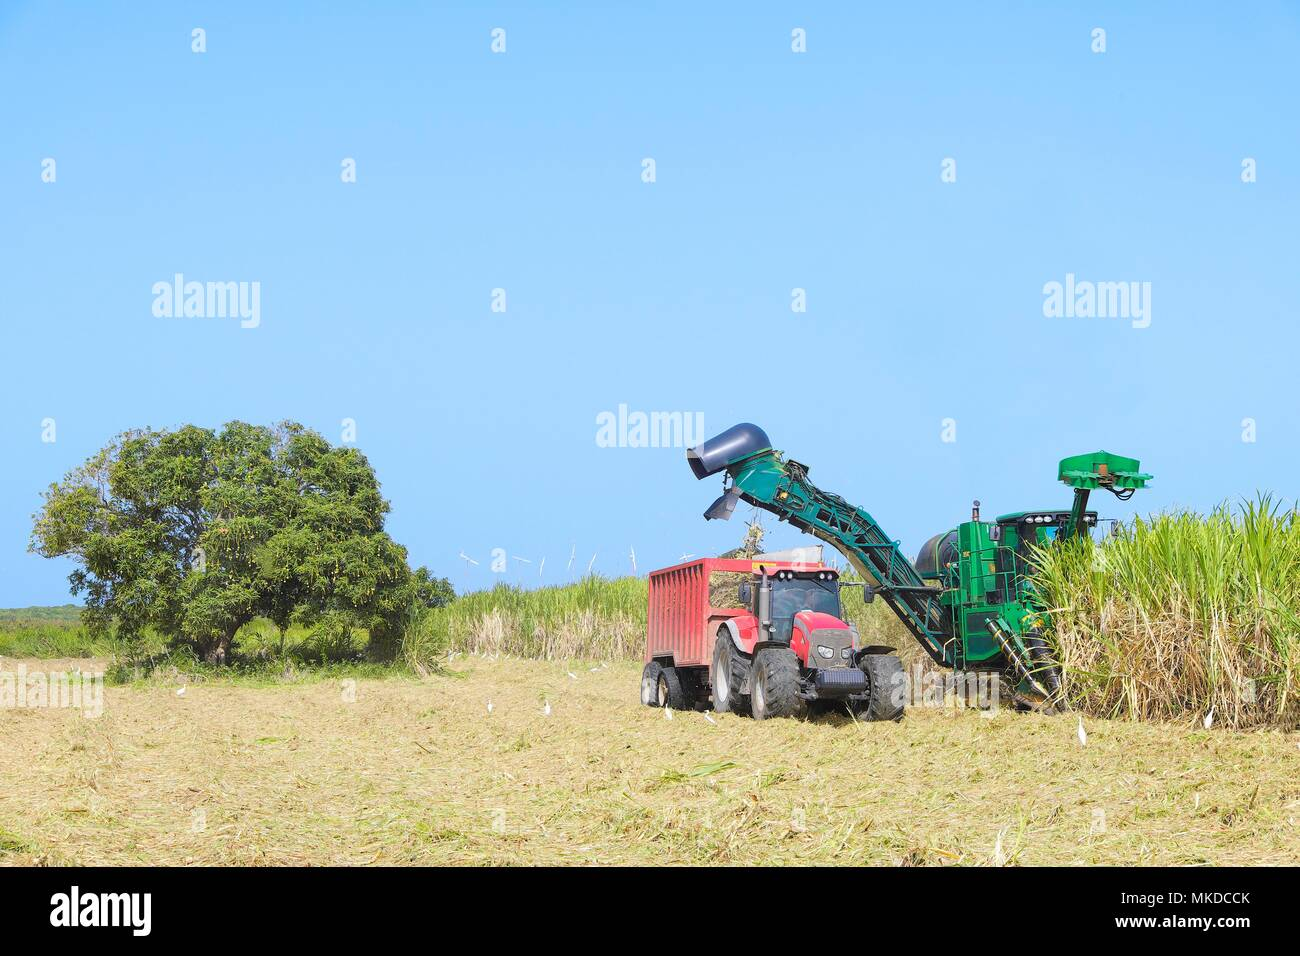 Guadeloupe sugar cane fields stock photos guadeloupe sugar cane fields stock images alamy - Pole emploi port louis guadeloupe ...